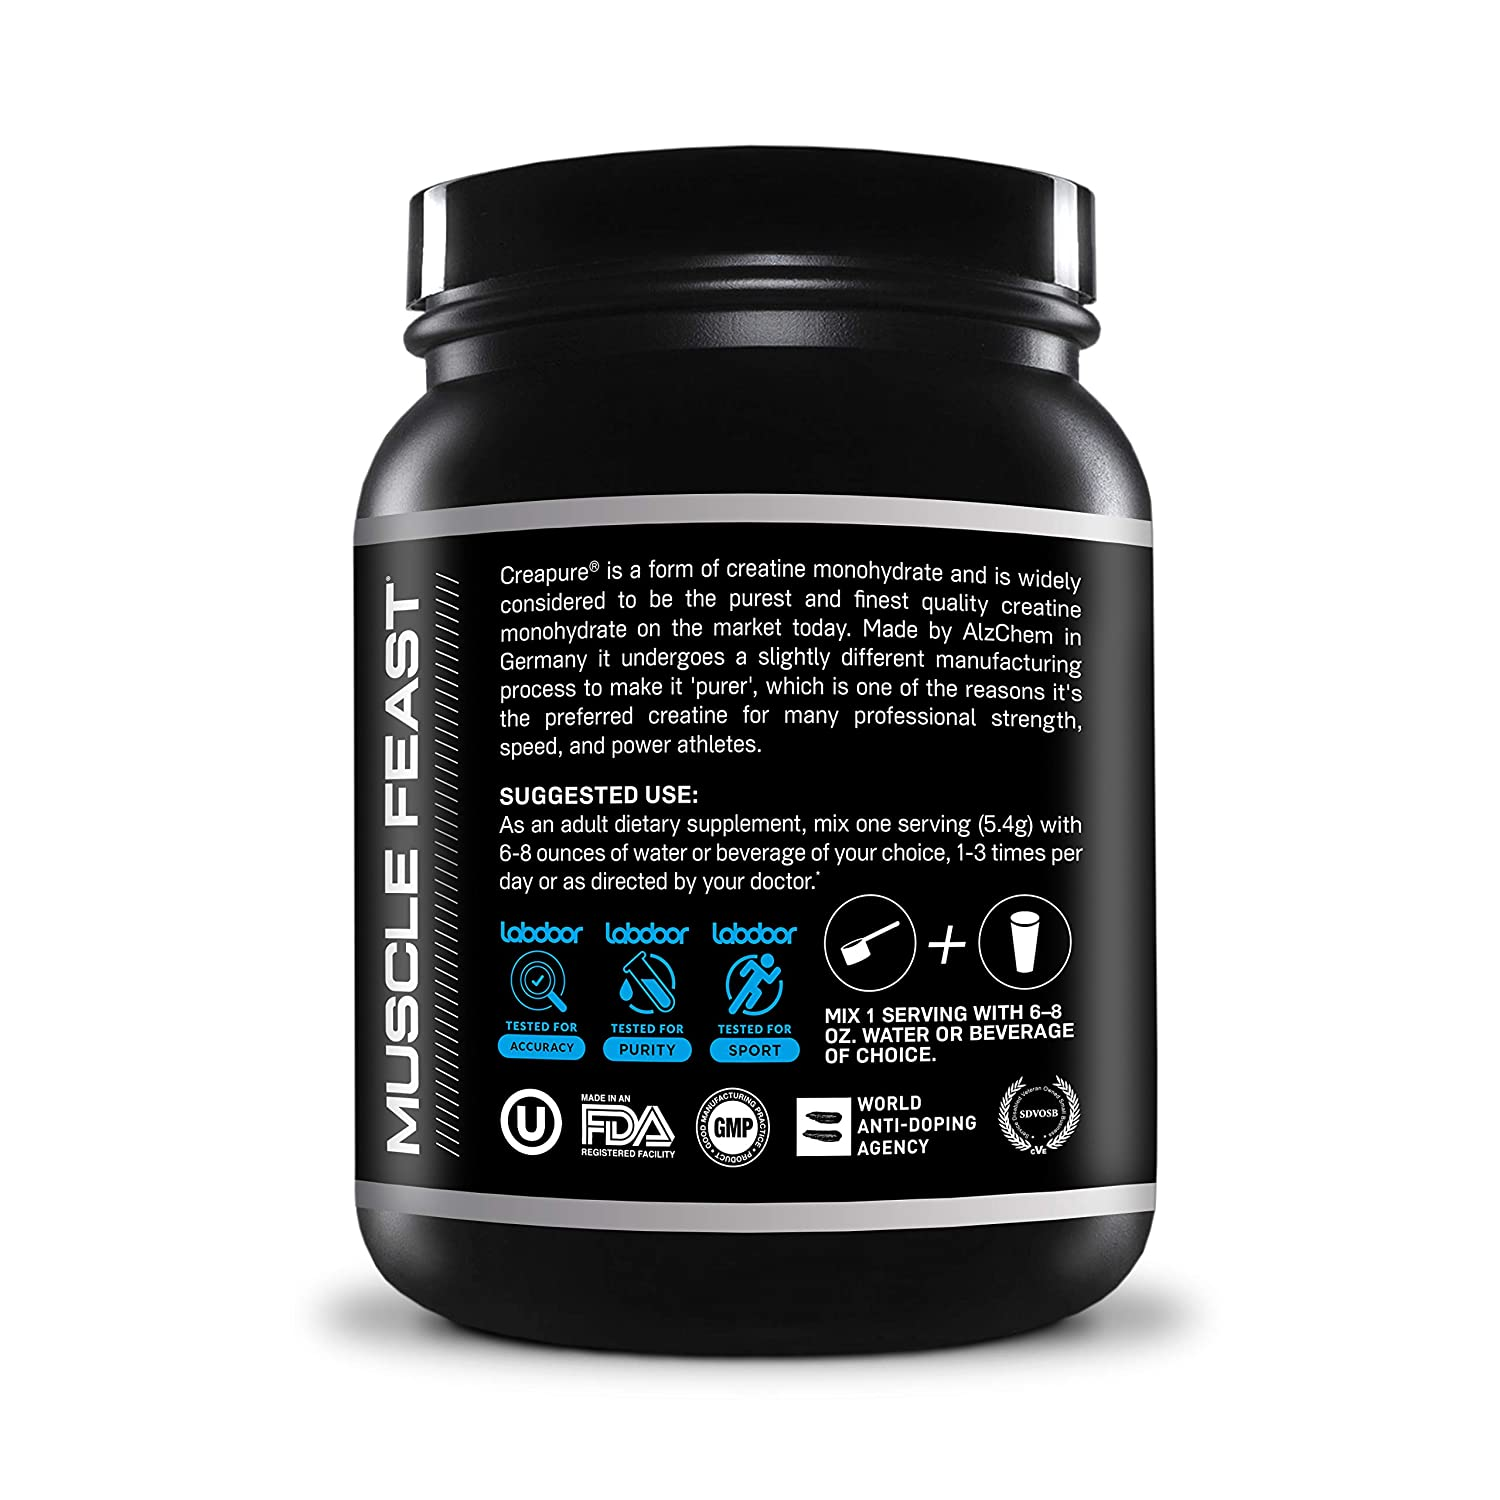 Creapure Creatine Monohydrate Powder – by Muscle Feast Premium Pre-Workout or Post-Workout Easy to Mix and Gluten-Free 2lb, Unflavored